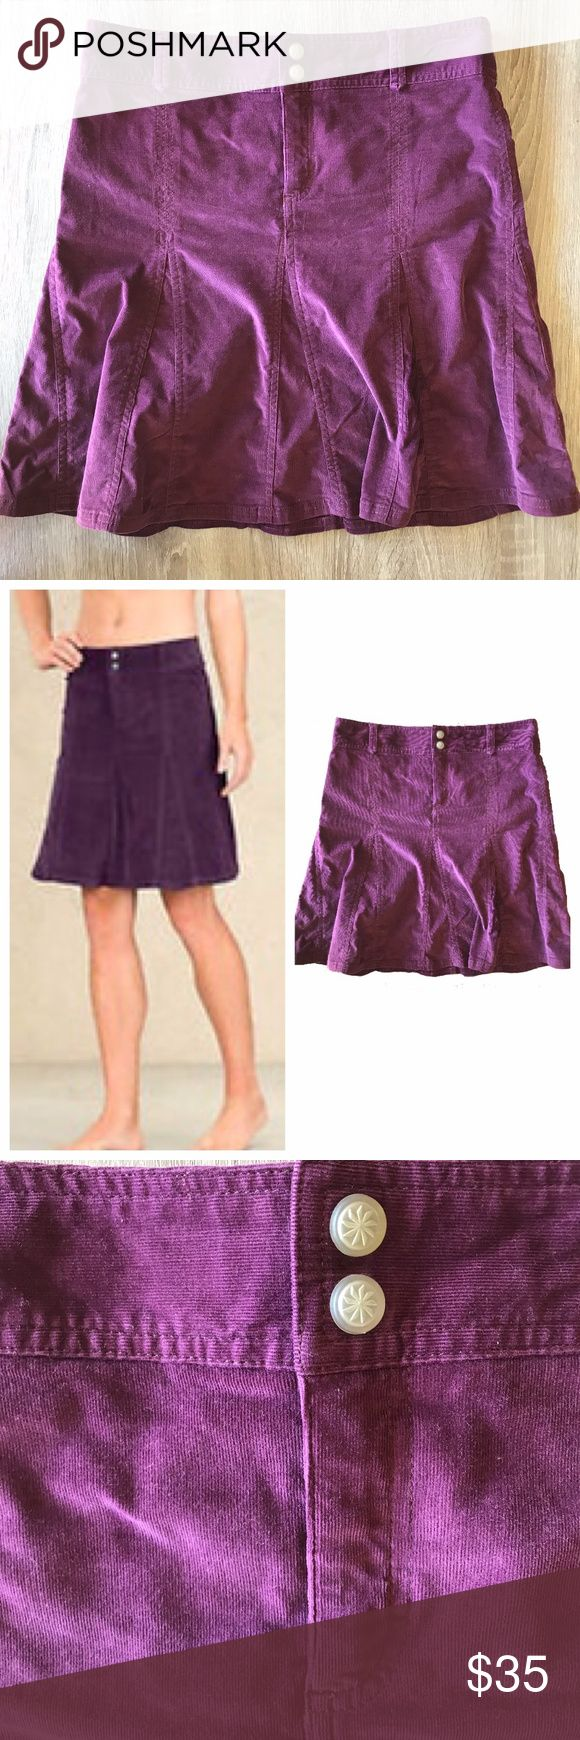 "Athleta Whenever Grape Corduroy Flared Skirt The Athleta Whenever fit and flare skirt in purple grape corduroy.  This cord skirt has a flared hemline, two snap closure, and zip fly.  Fits higher on waist and has belt loops. Perfect to wear with tights and boots.  Excellent used condition.  - Size 6  - Approx. 16"" across waist - Approx. 19.75"" long - 98% cotton, 2% spandex Athleta Skirts A-Line or Full"